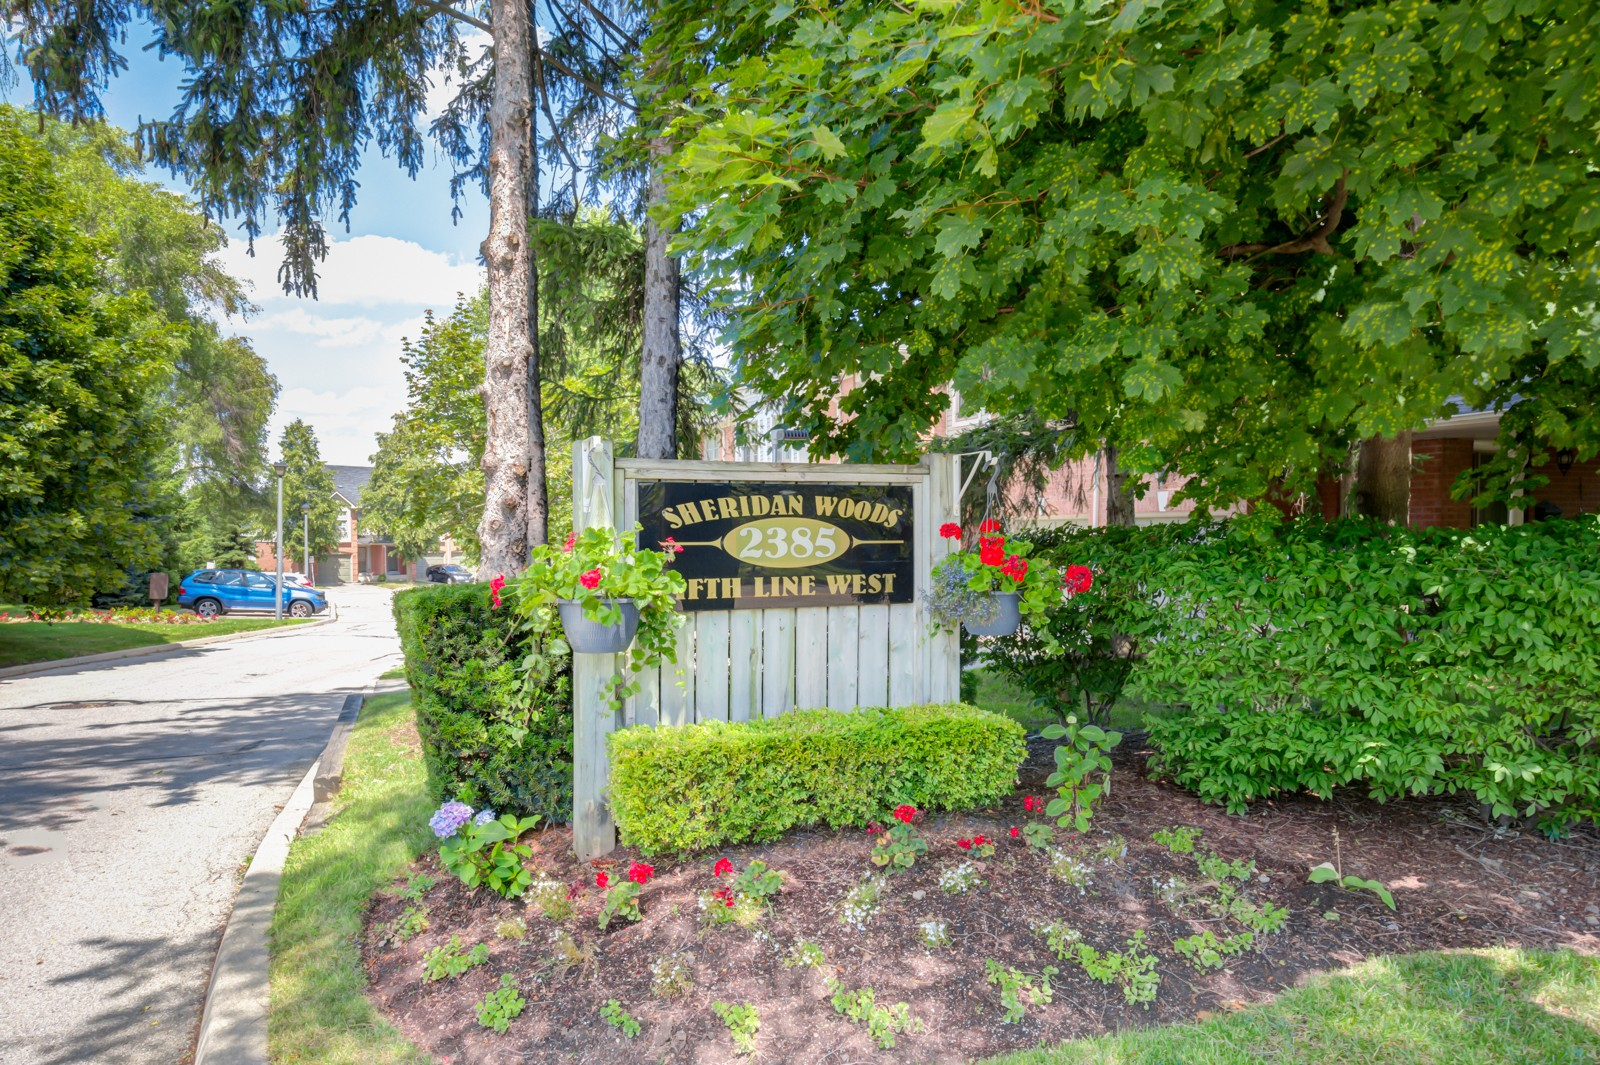 Sheridan Woods at 2385 Fifth Line W, Mississauga 0